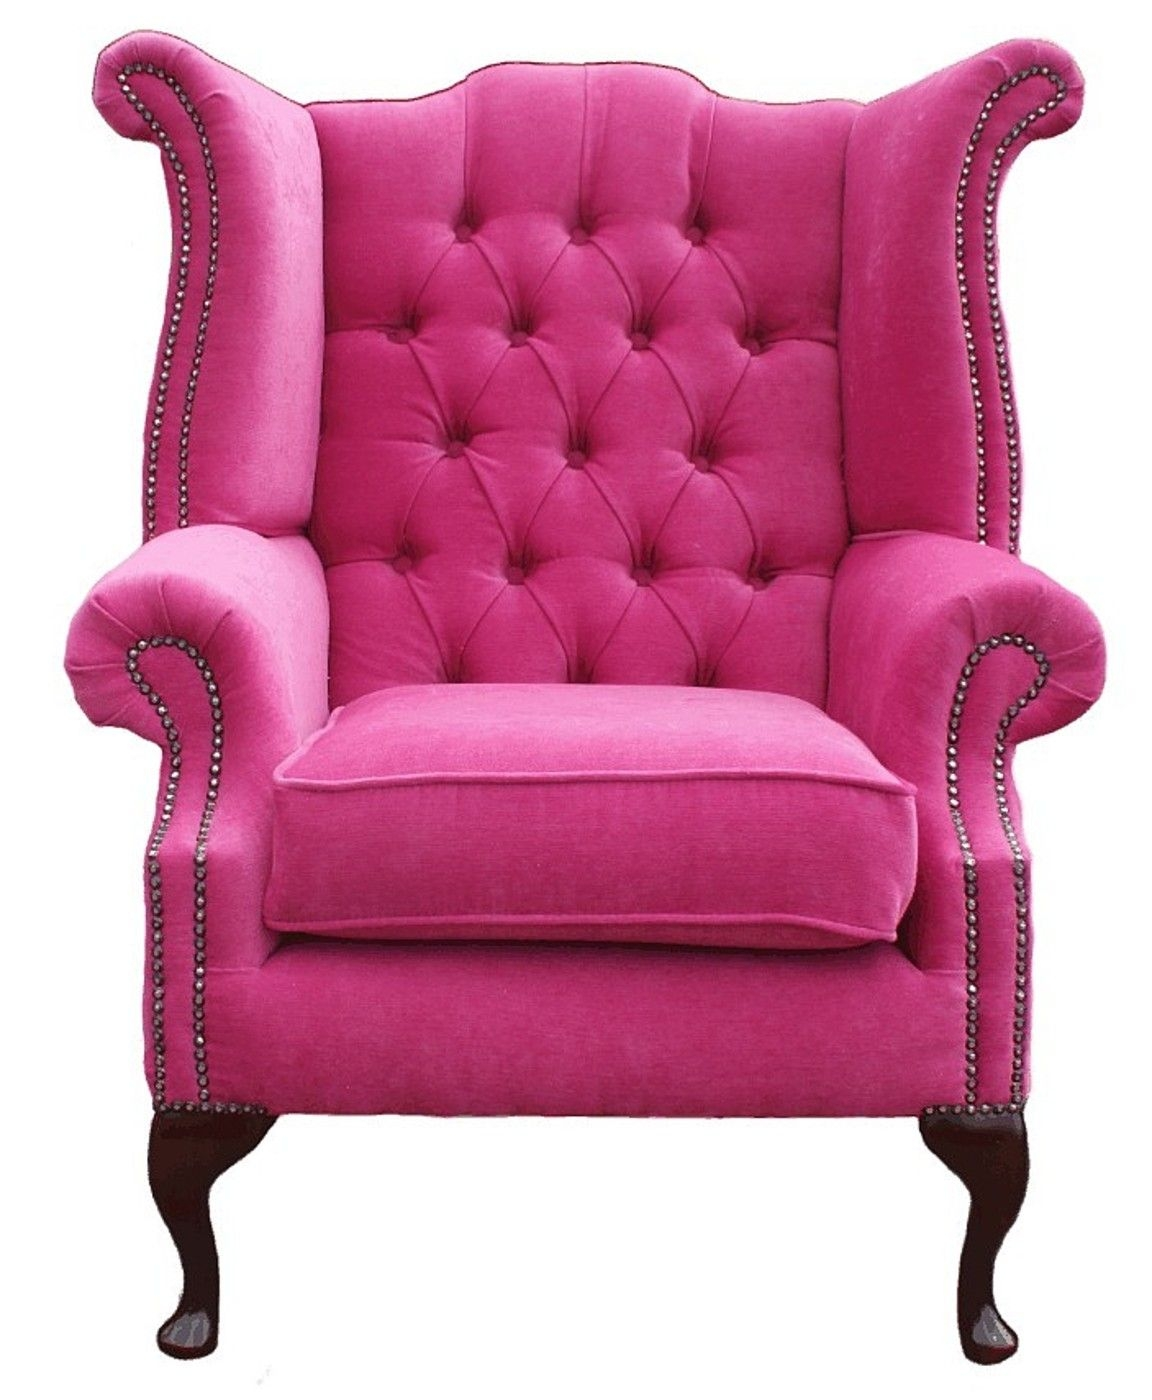 Chesterfield Fabric Queen Anne High Back Wing Chair Pink Leather